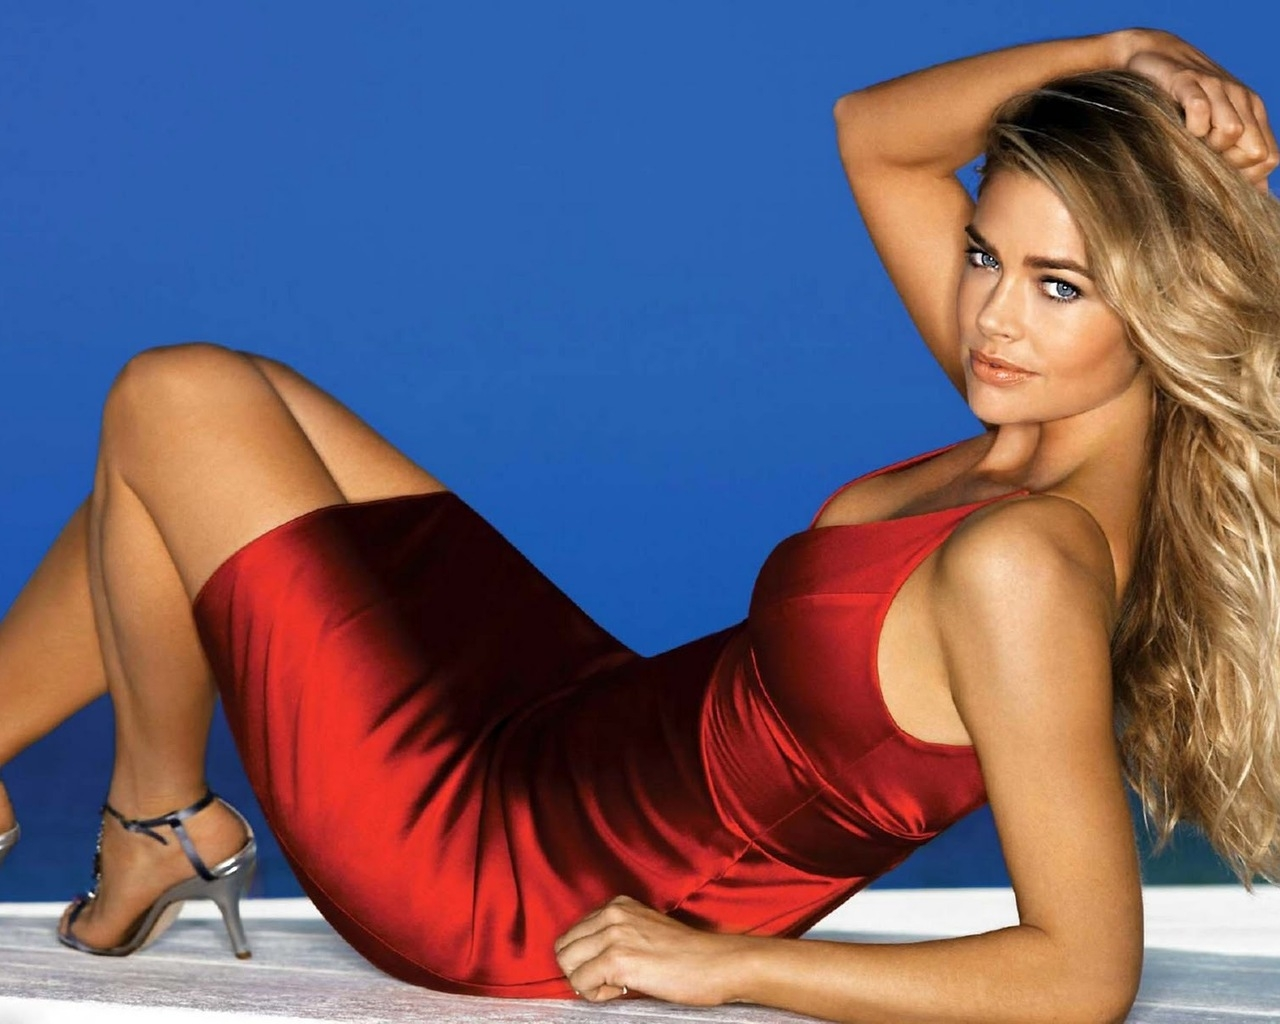 Denise Richards Red Dress for 1280 x 1024 resolution